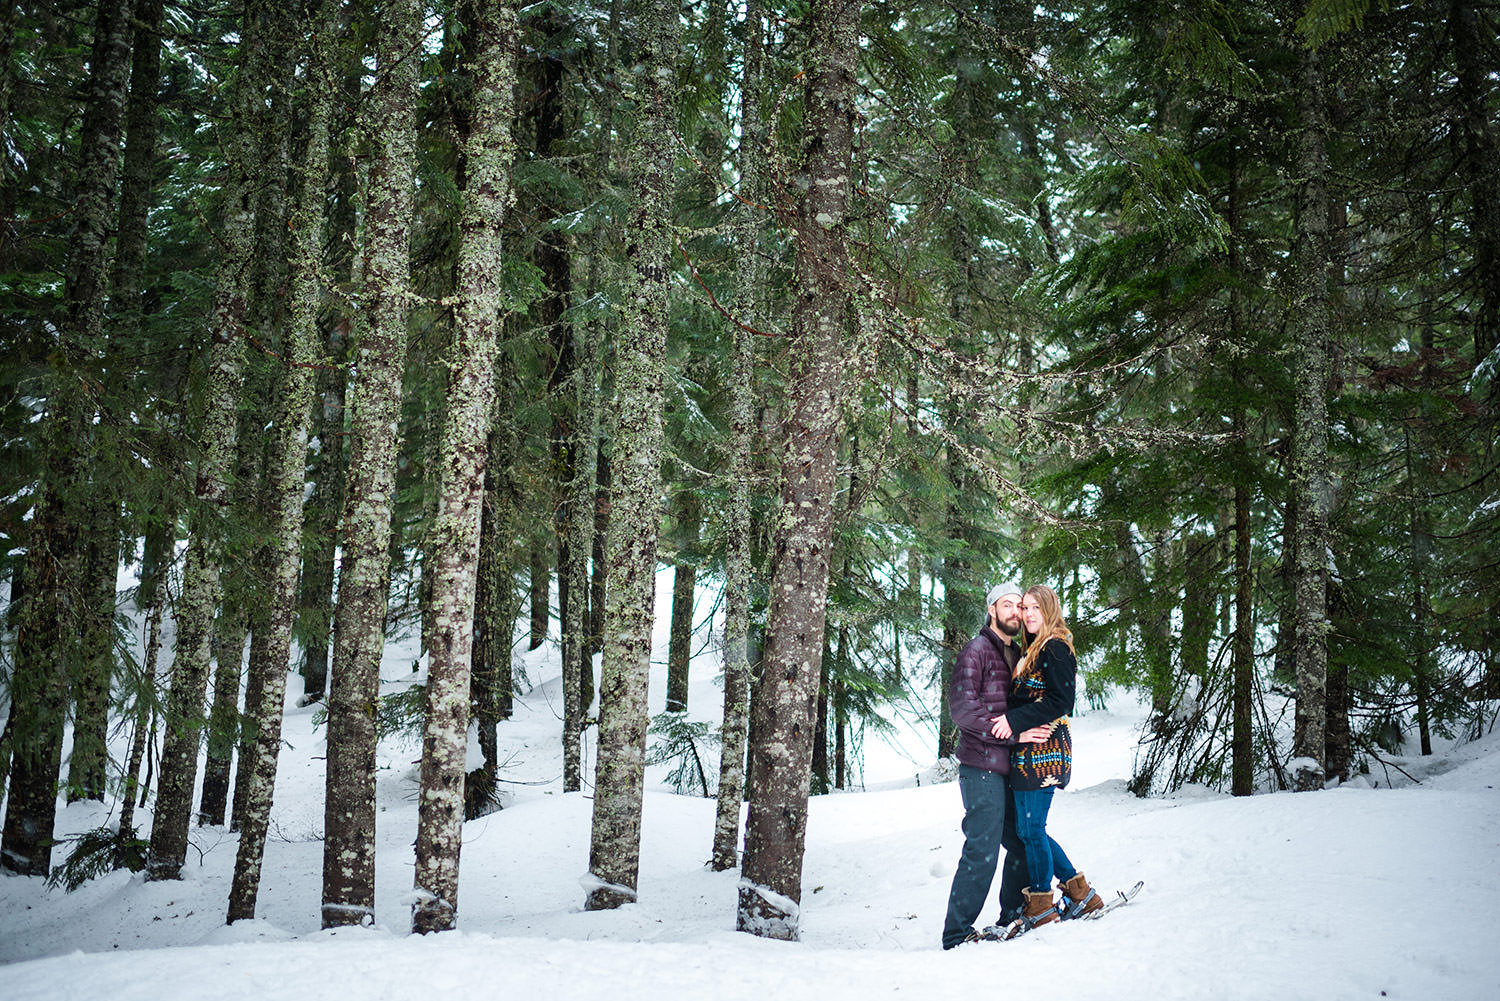 Snowy trees with couple at Snowshoe engagement session at Snoqualmie Pass outside Seattle